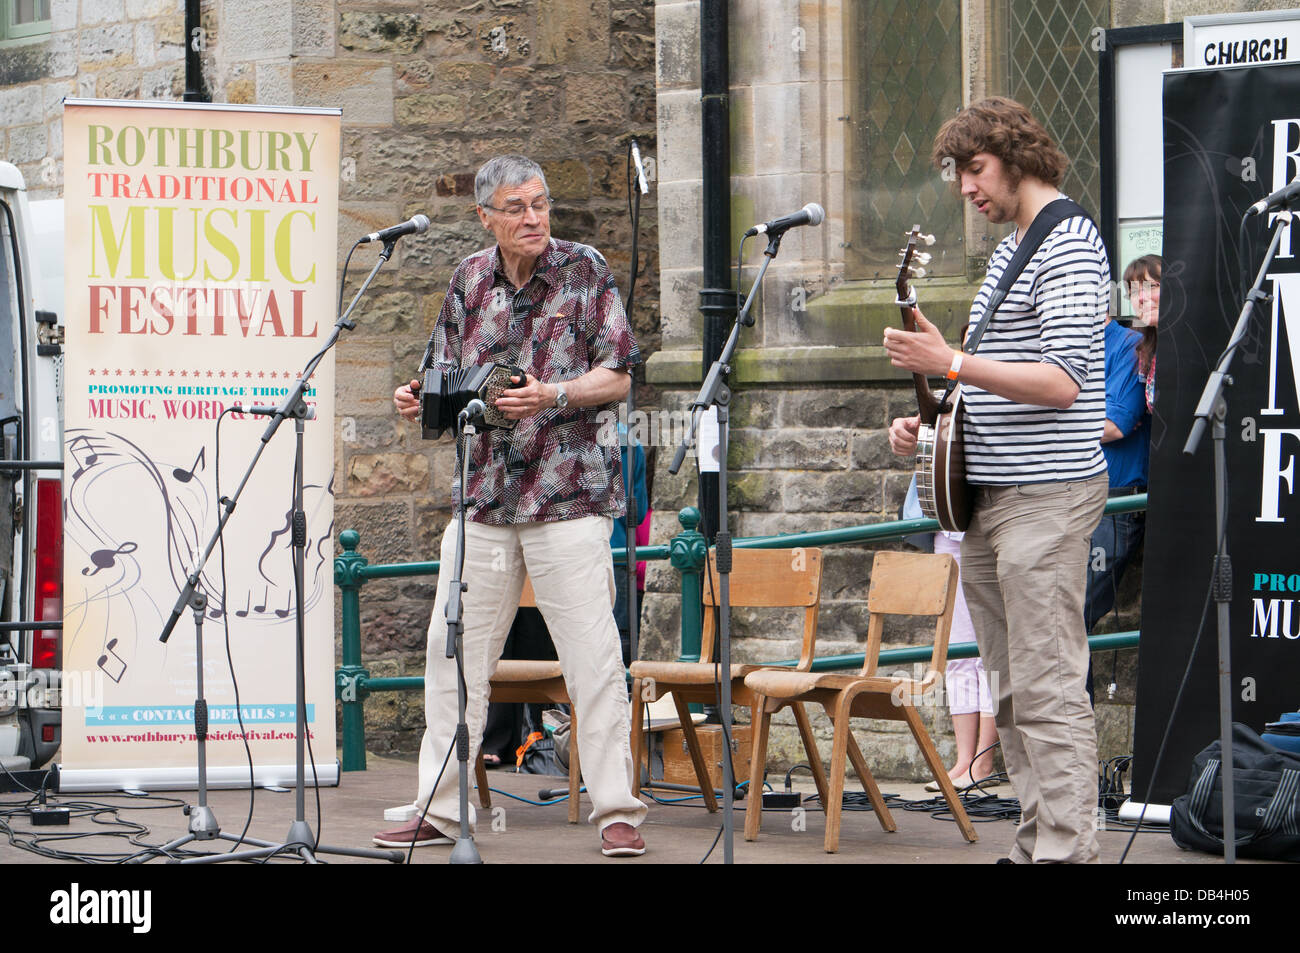 Alistair Anderson on concertina and Dan Walsh on banjo perform at the Rothbury Traditional Music Festival, northern - Stock Image